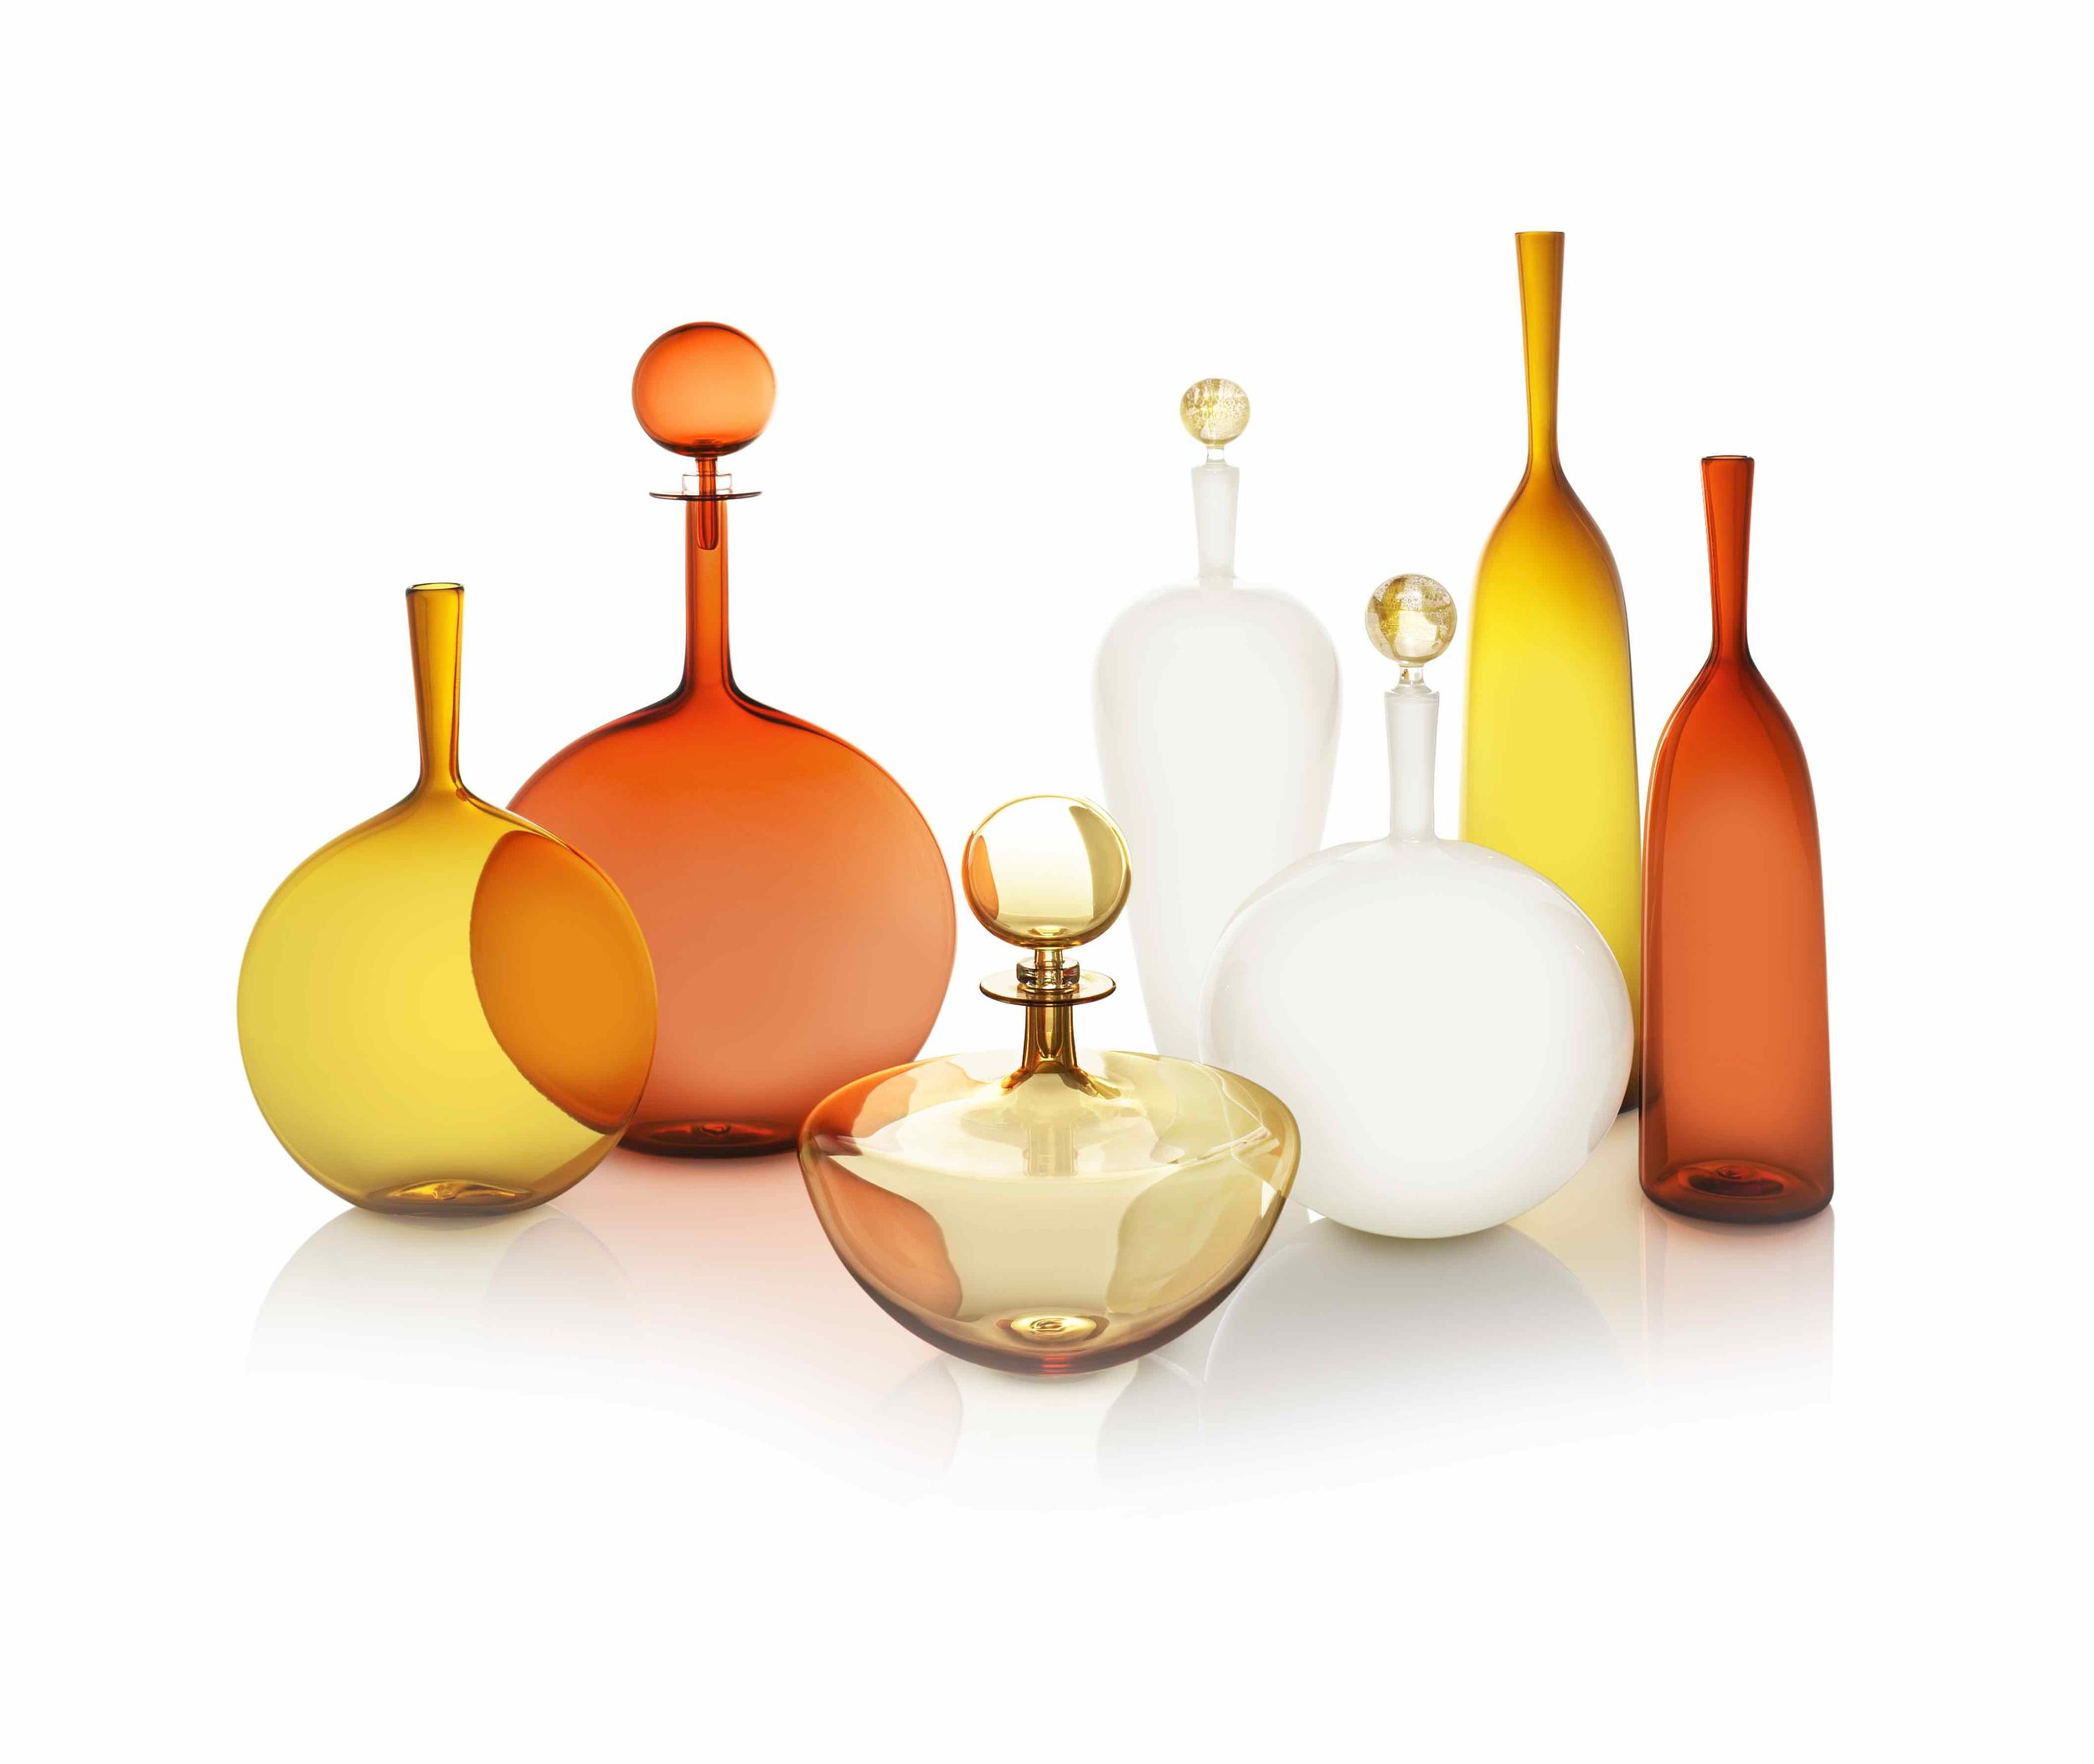 SUNSET GROUPING: ANGELIC FLASK AMBER, LARGE DECANTER FLASK APRICOT, PETITE DECANTER LOW ARC WHISKEY, CARMELLA HIGH SHOULDER & LOW ROUND IN IVORY, LARGE ANGELIC AMBER, SMALL ANGELIC APRICOT